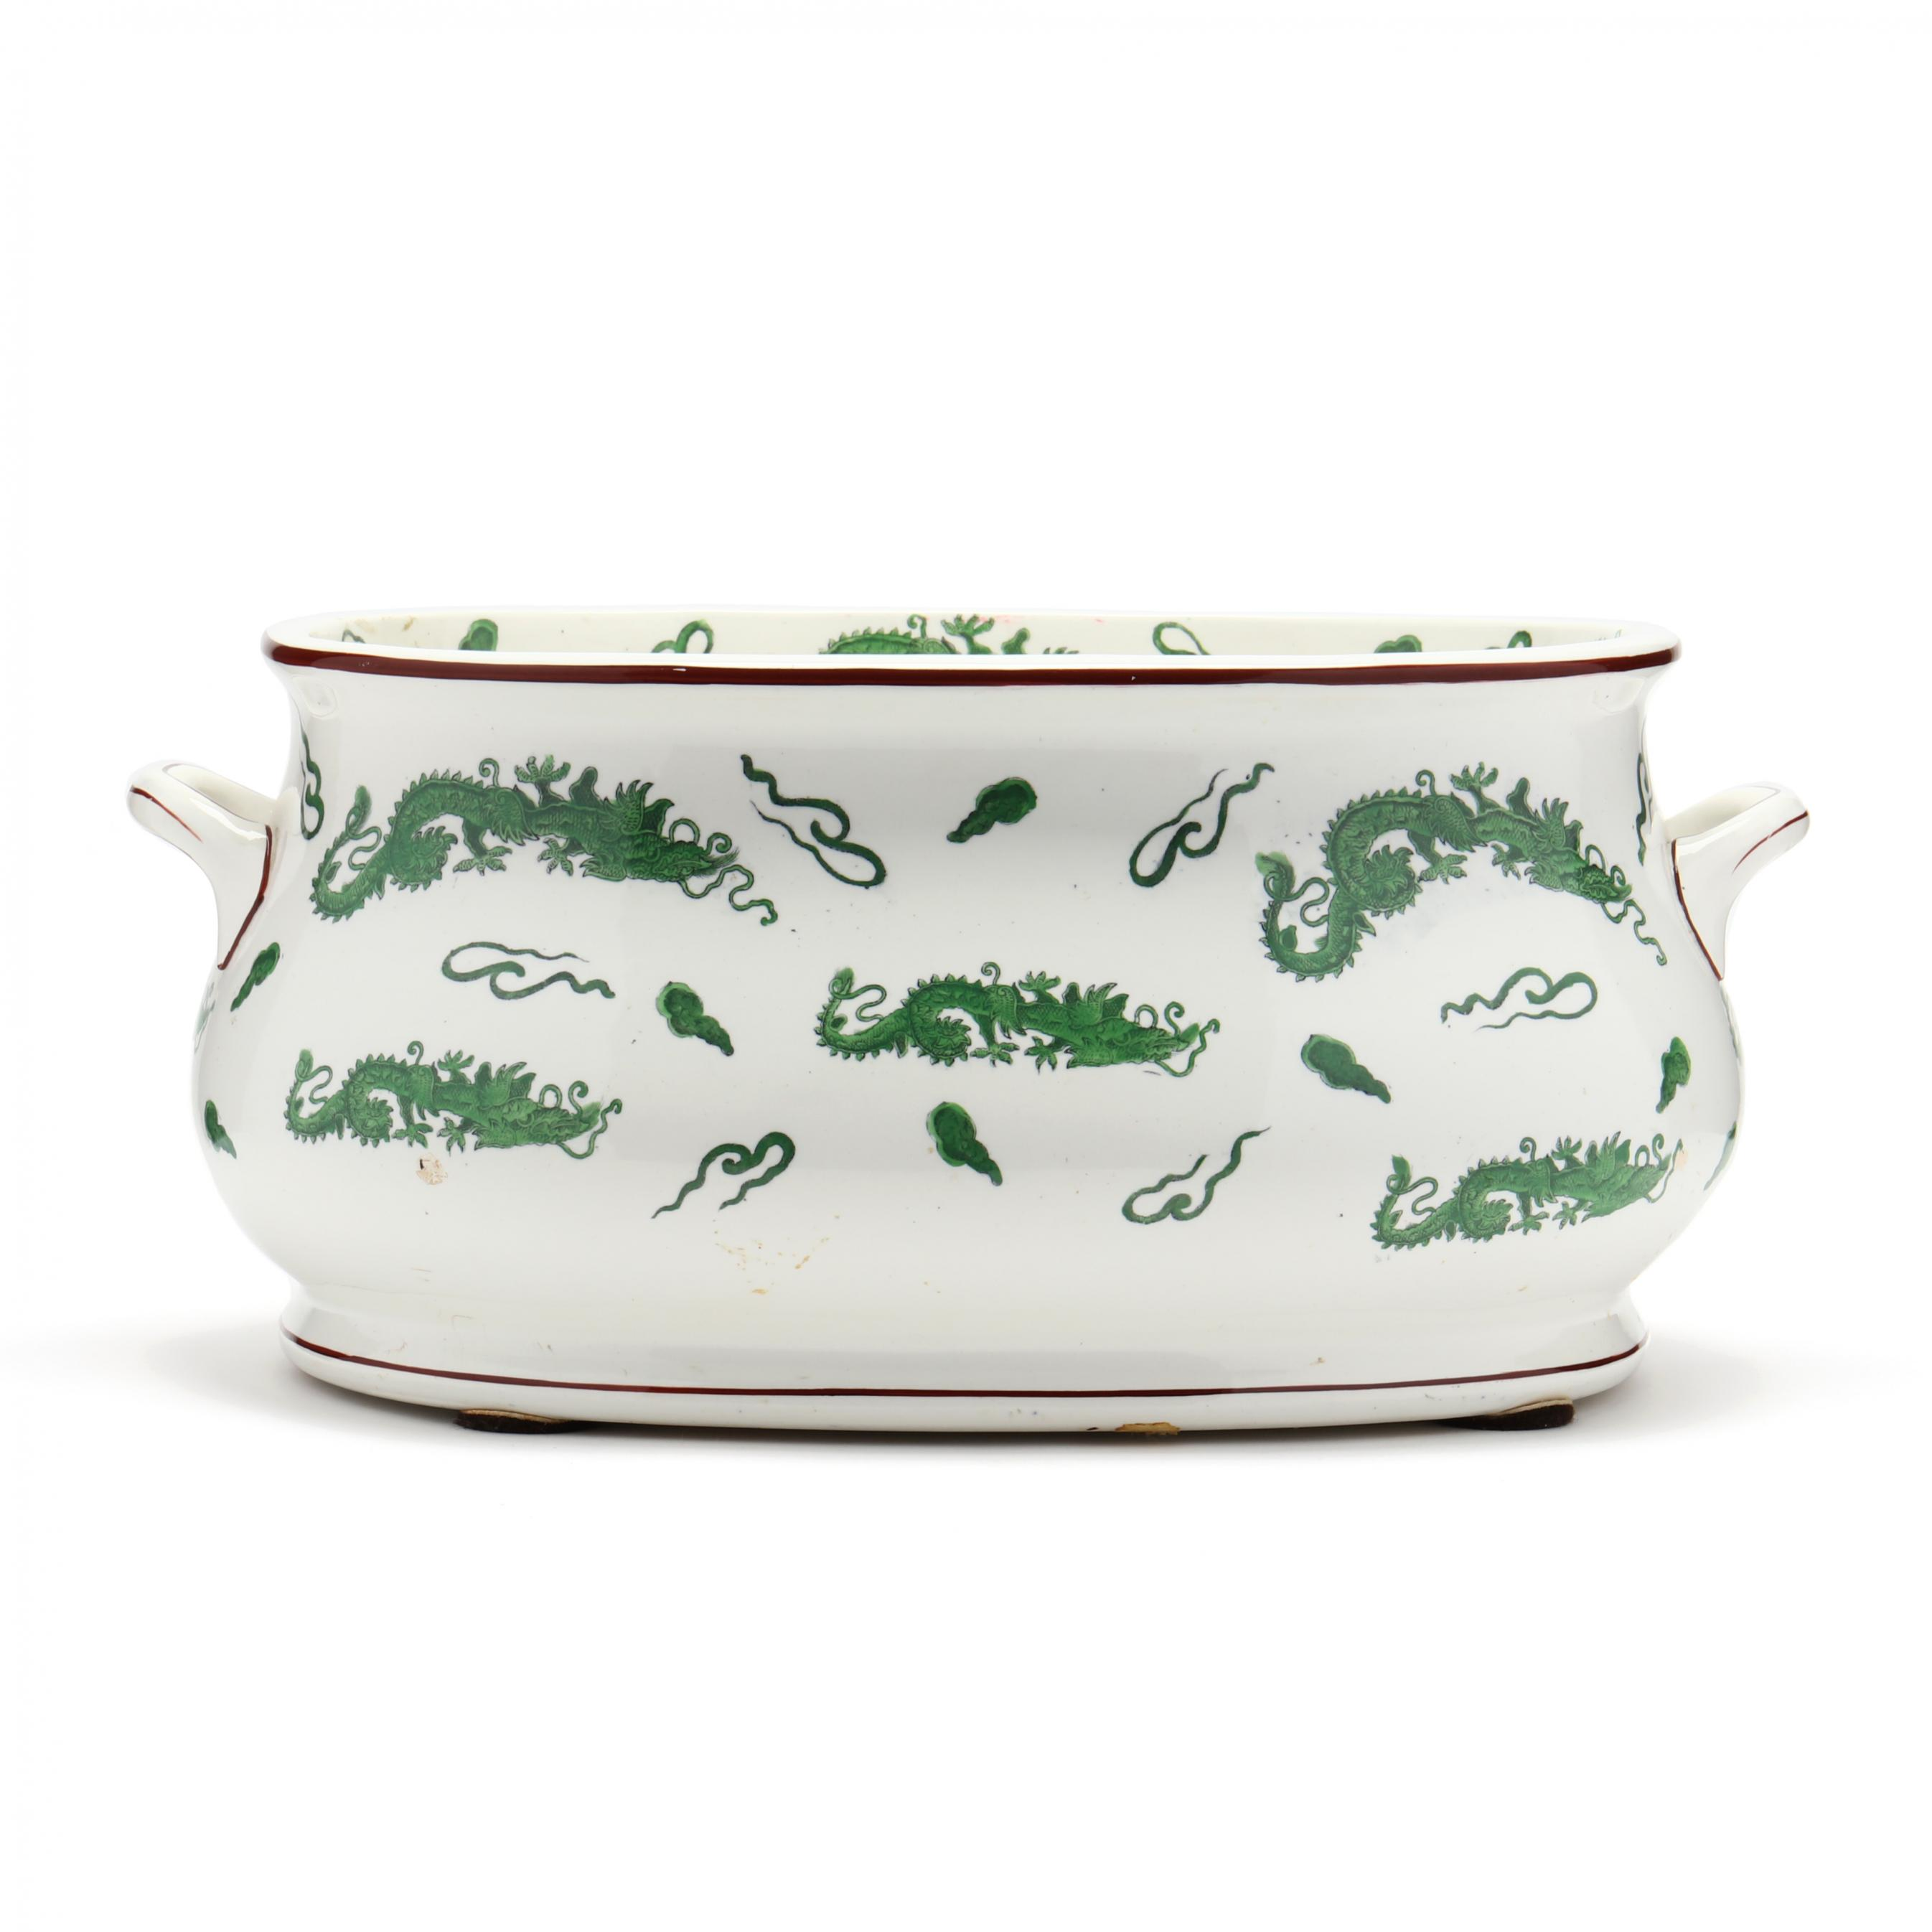 copeland-spode-chinoiserie-decorated-porcelain-foot-bath